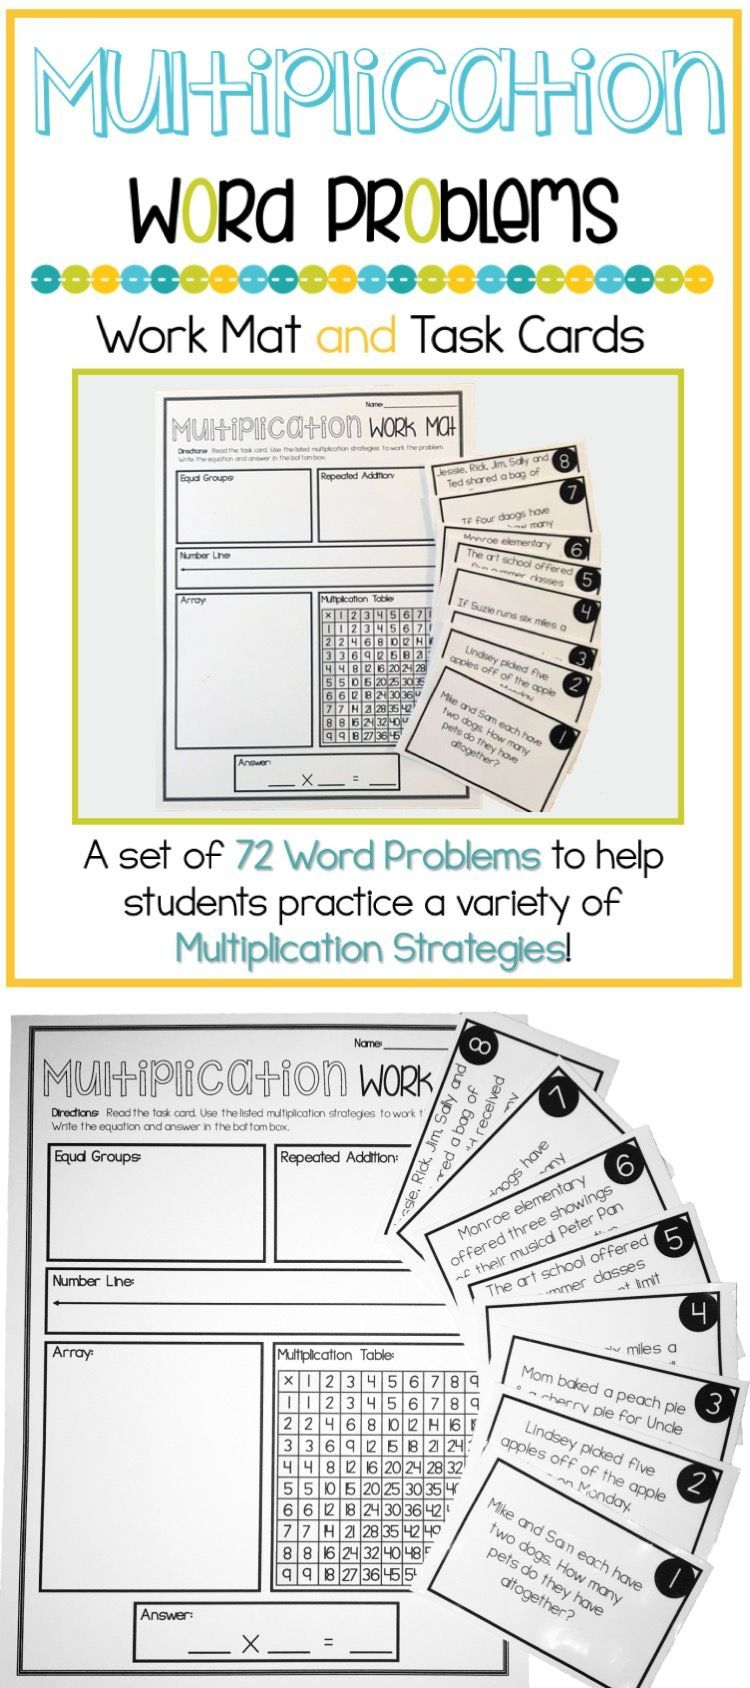 Multiplication Word Problems 3Rd Grade Work Mat & Task Cards within Printable Multiplication Strategy Mat